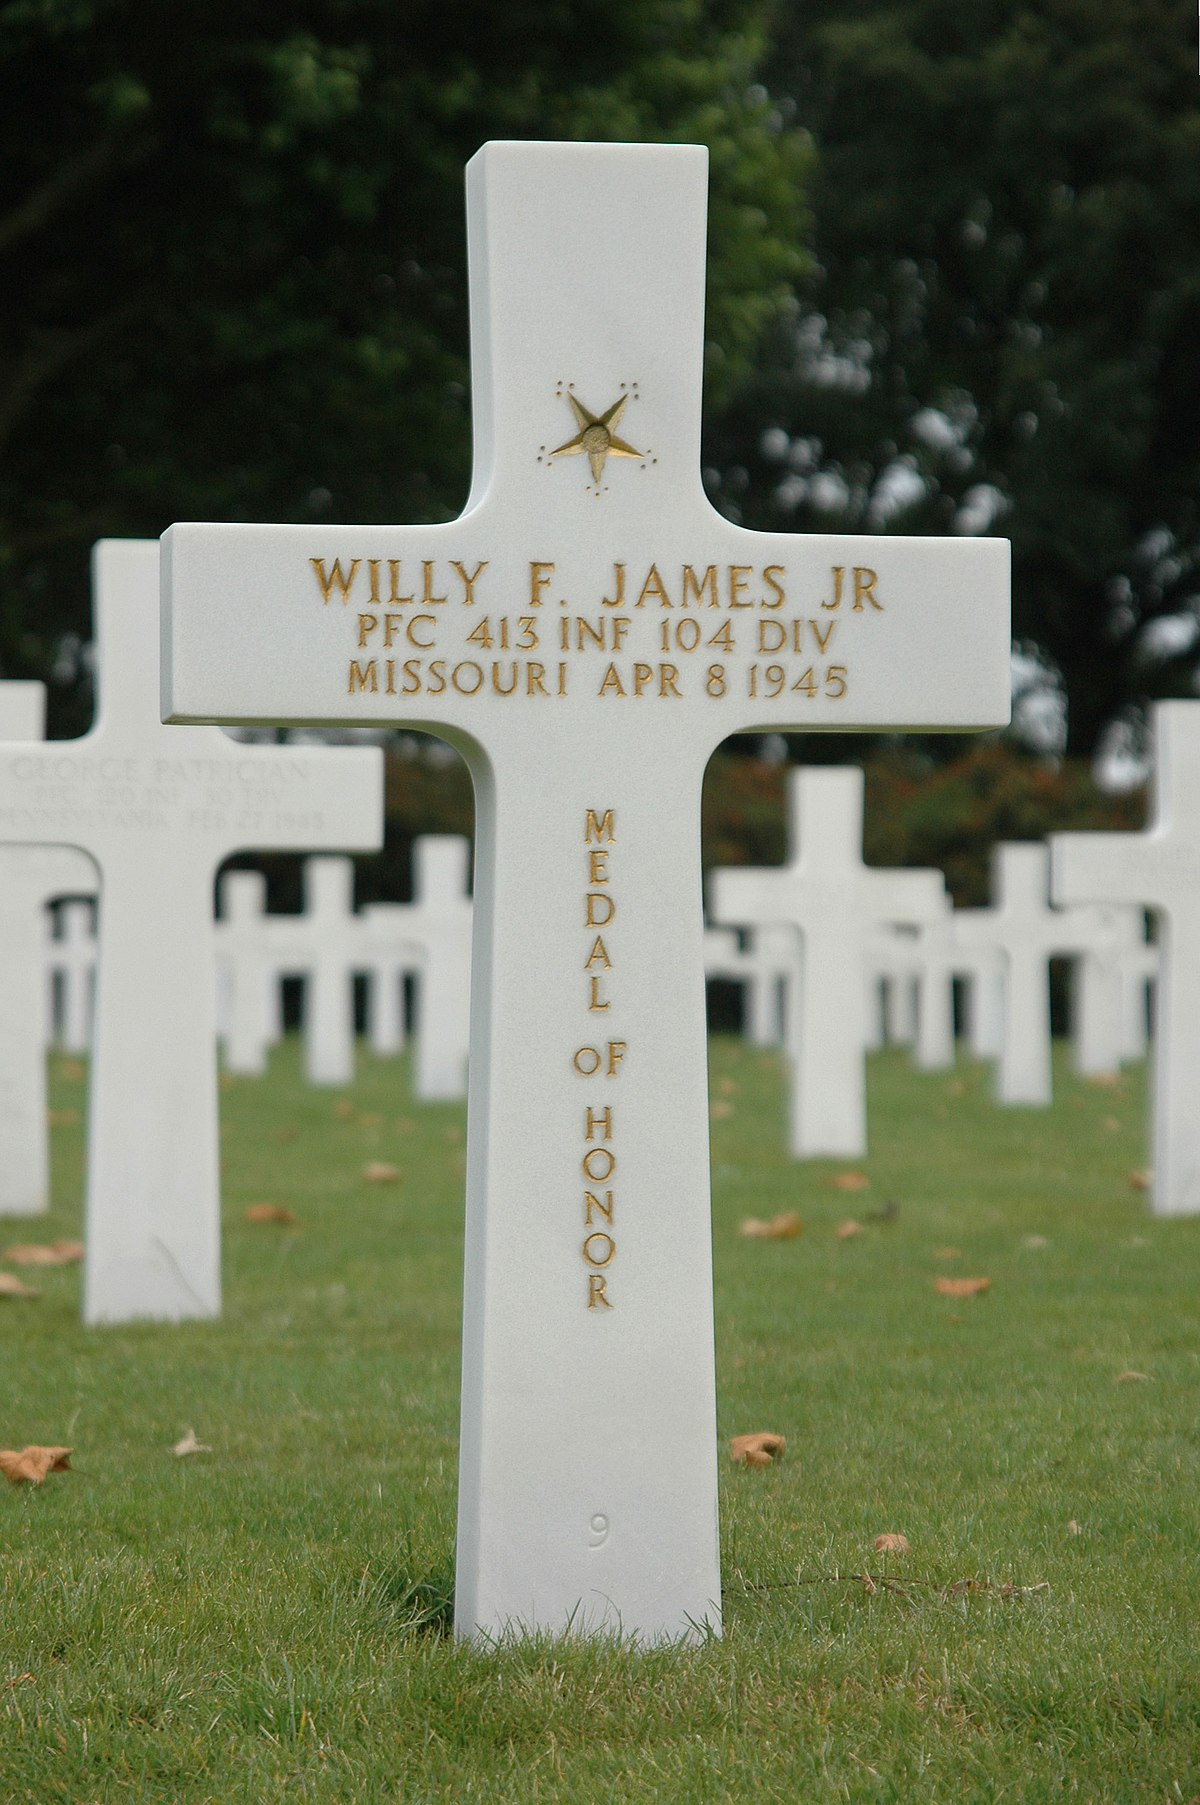 Willy F. James Jr. - Wikipedia